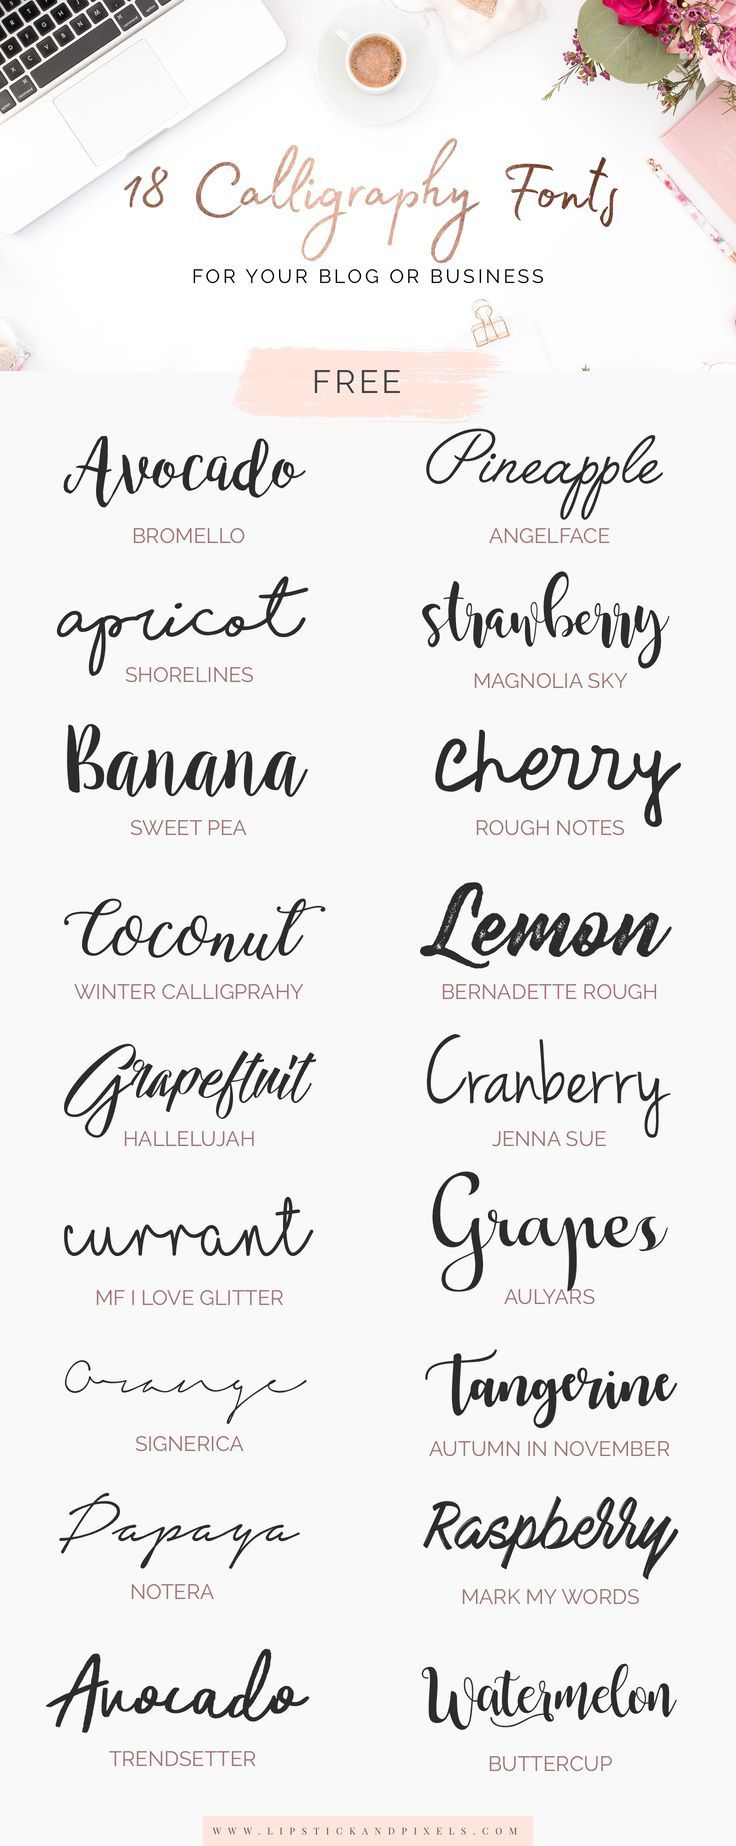 Free calligraphy fonts for your or business